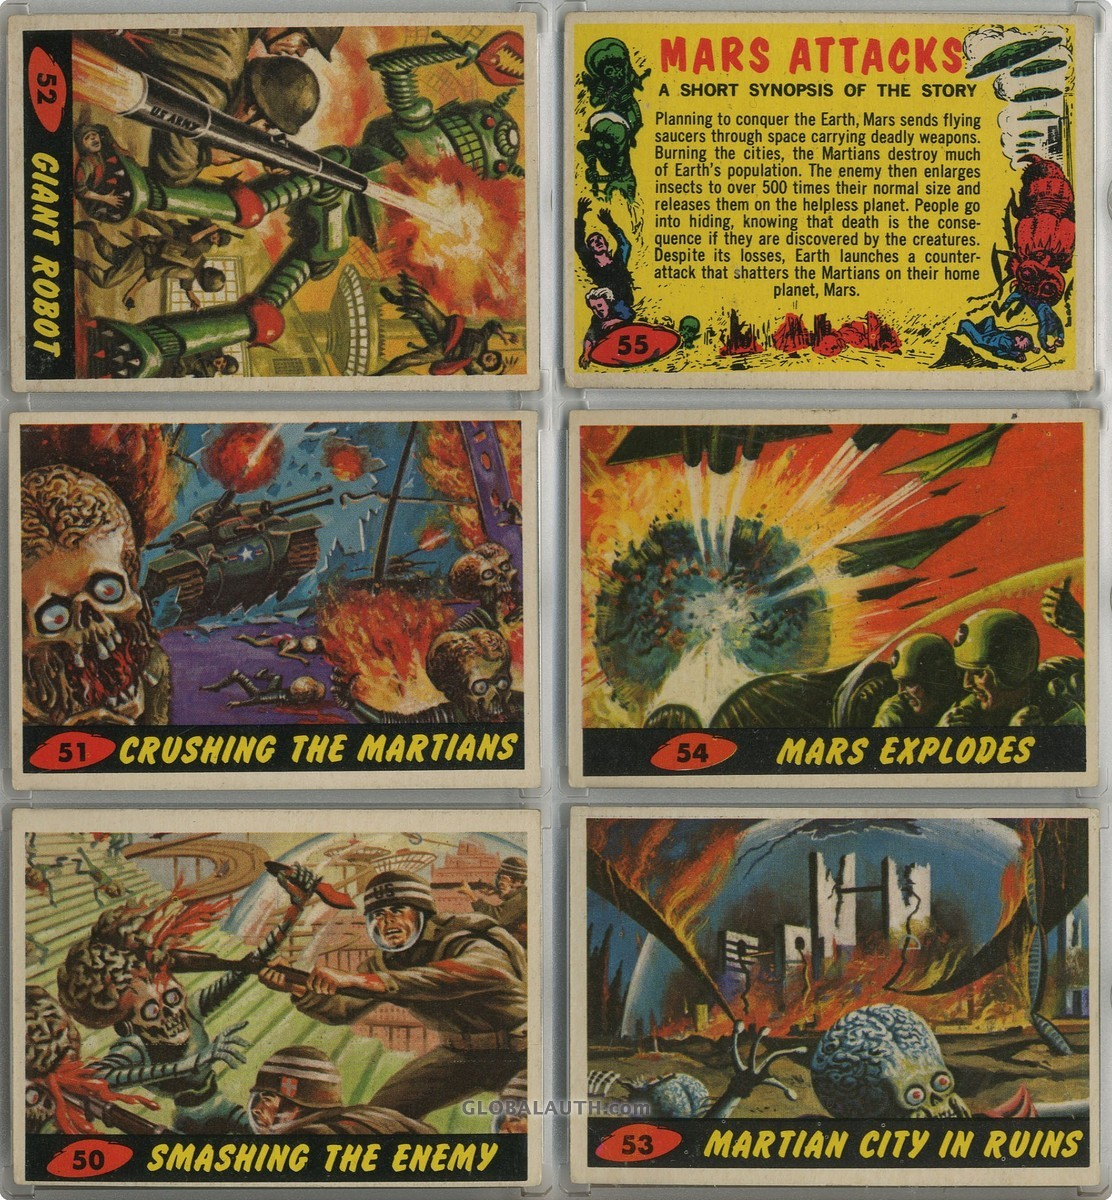 1962-mars-attacks-non-sports-card-set-front-image.jpg, #16